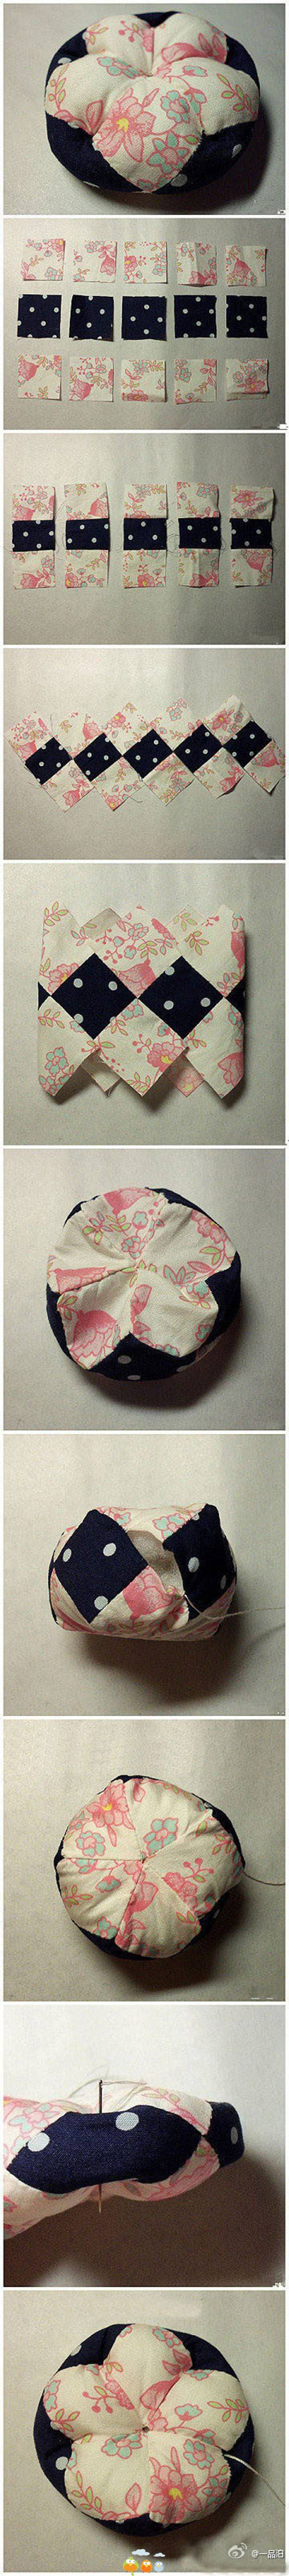 Pin cushion from Repiny Most inspiring pictures and photos